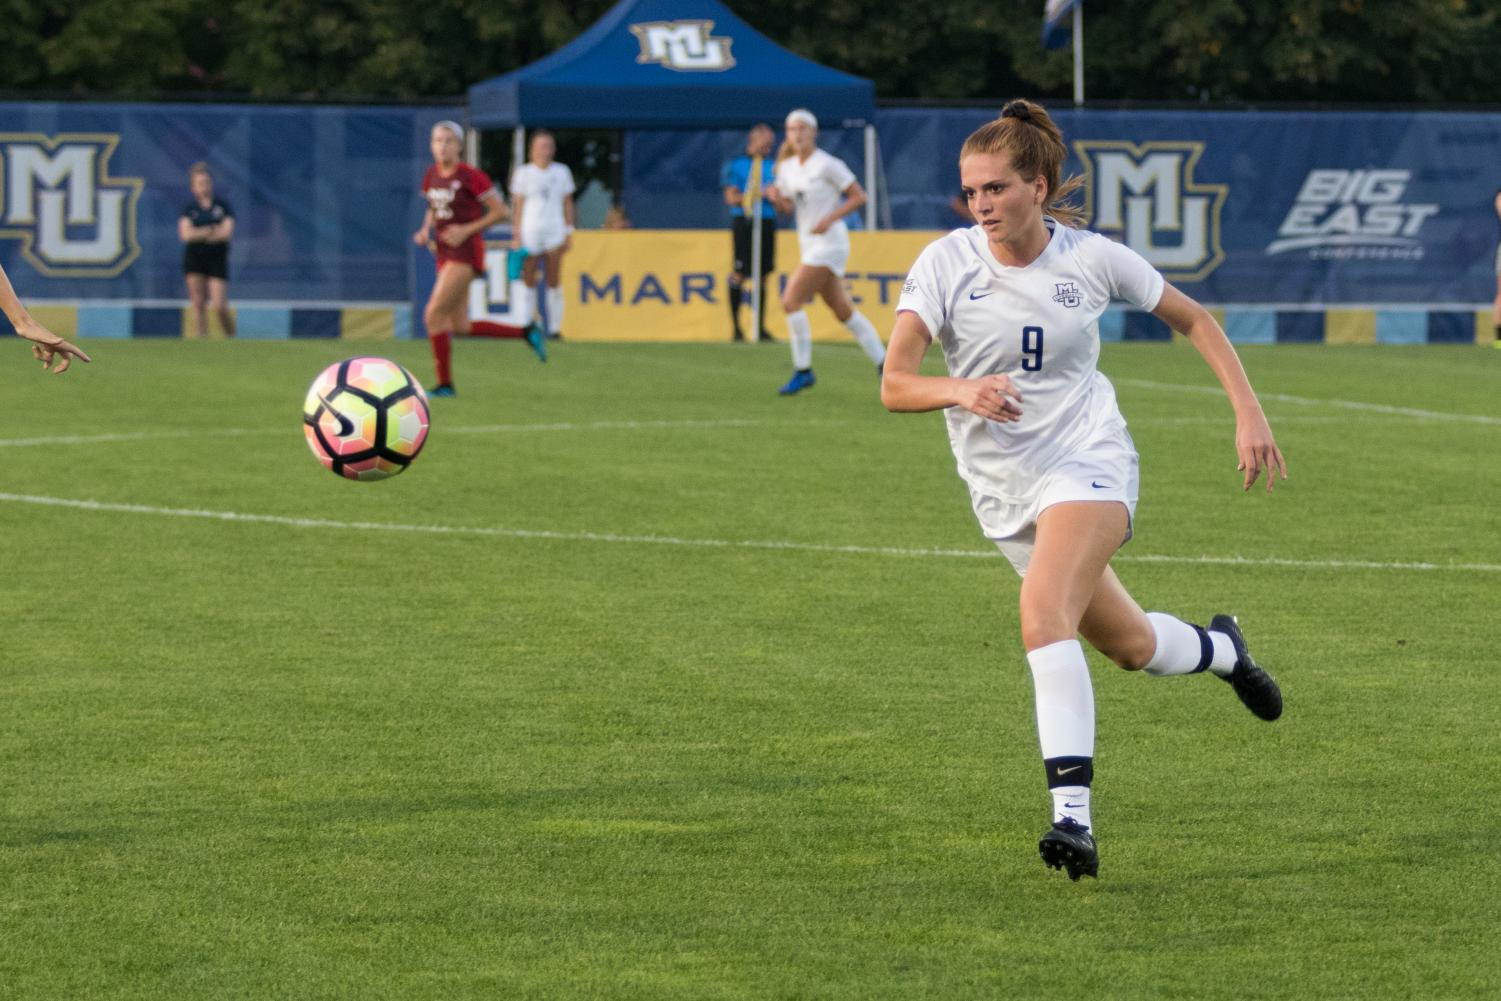 Macey Shock scored her first goal of the season Friday evening against Northern Illinois.